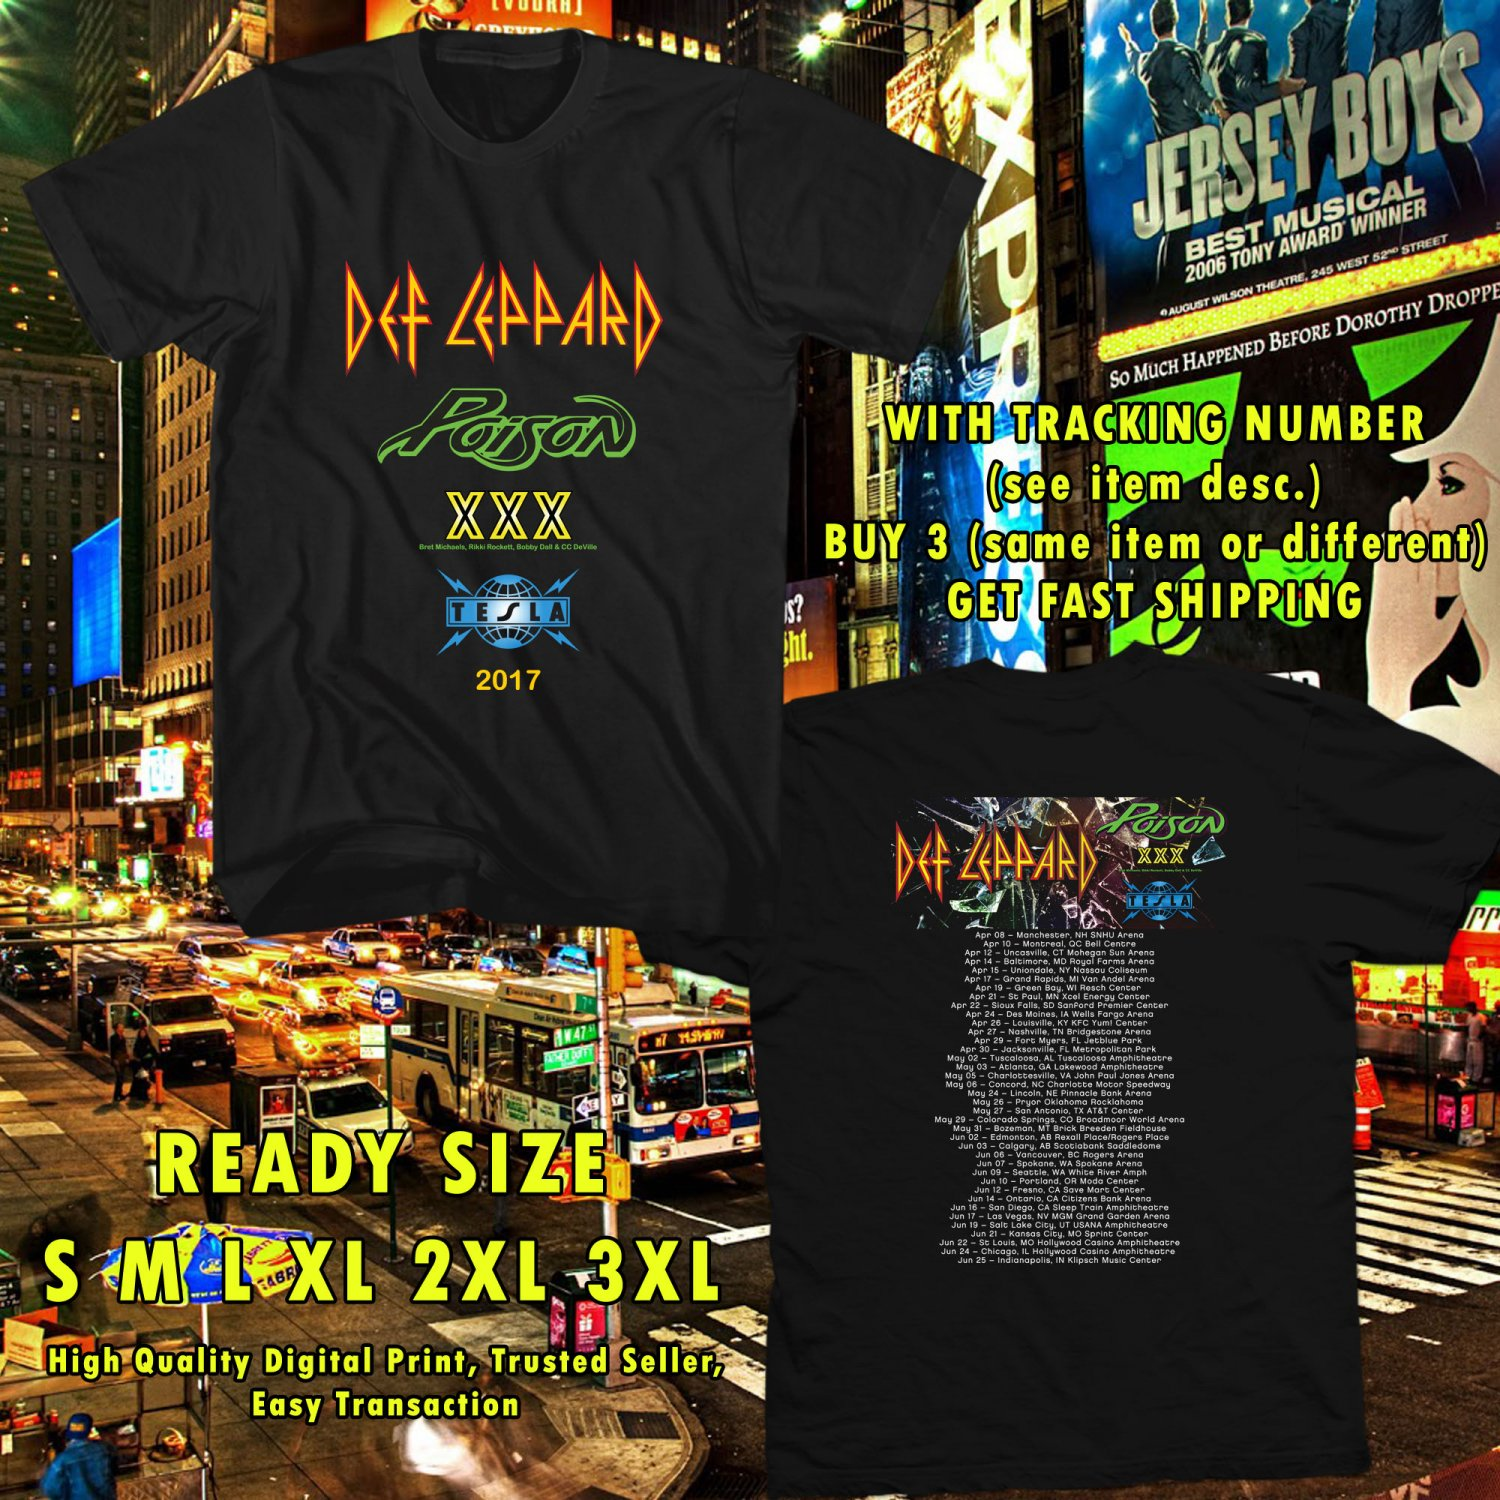 NEW DEF LEPPARD, POSION AND TESLA TOUR 2017 black TEE 2 SIDE DMTR 332